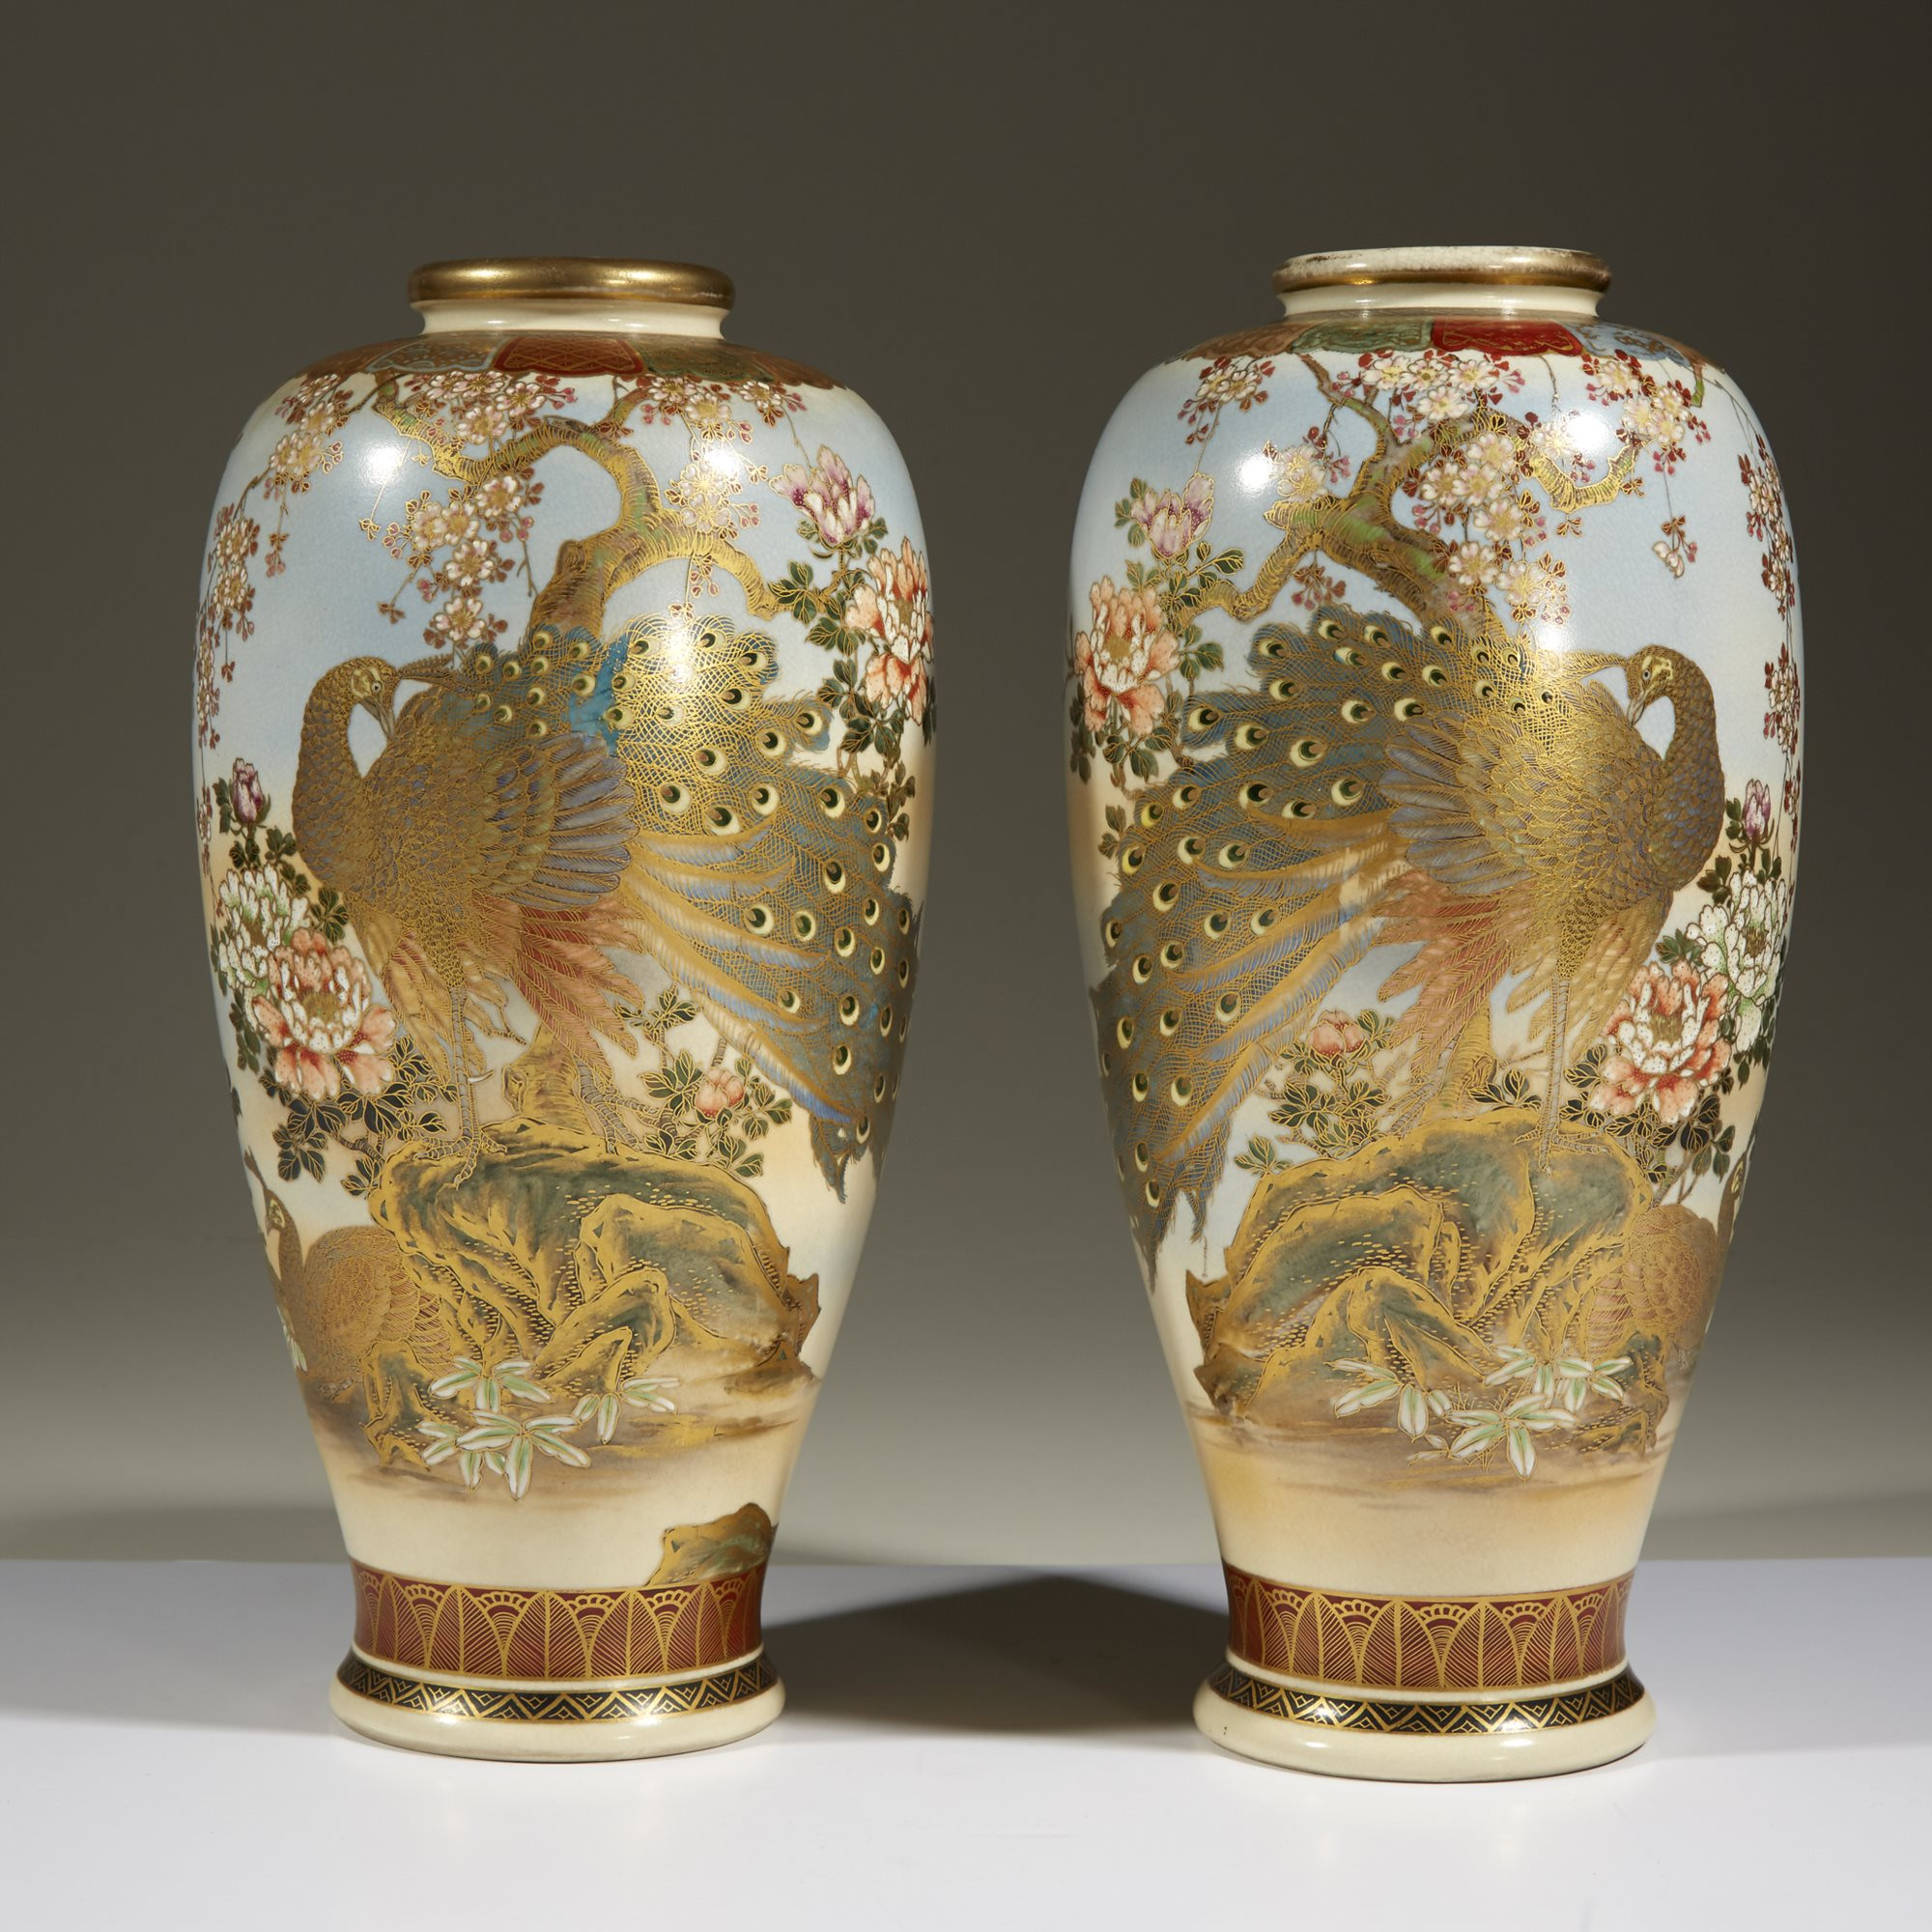 Lot 192 | A pair of Satsuma-type enameled pottery vases, signed Gyokuzan, late 19th/early 20th century, 12 ½ inches high